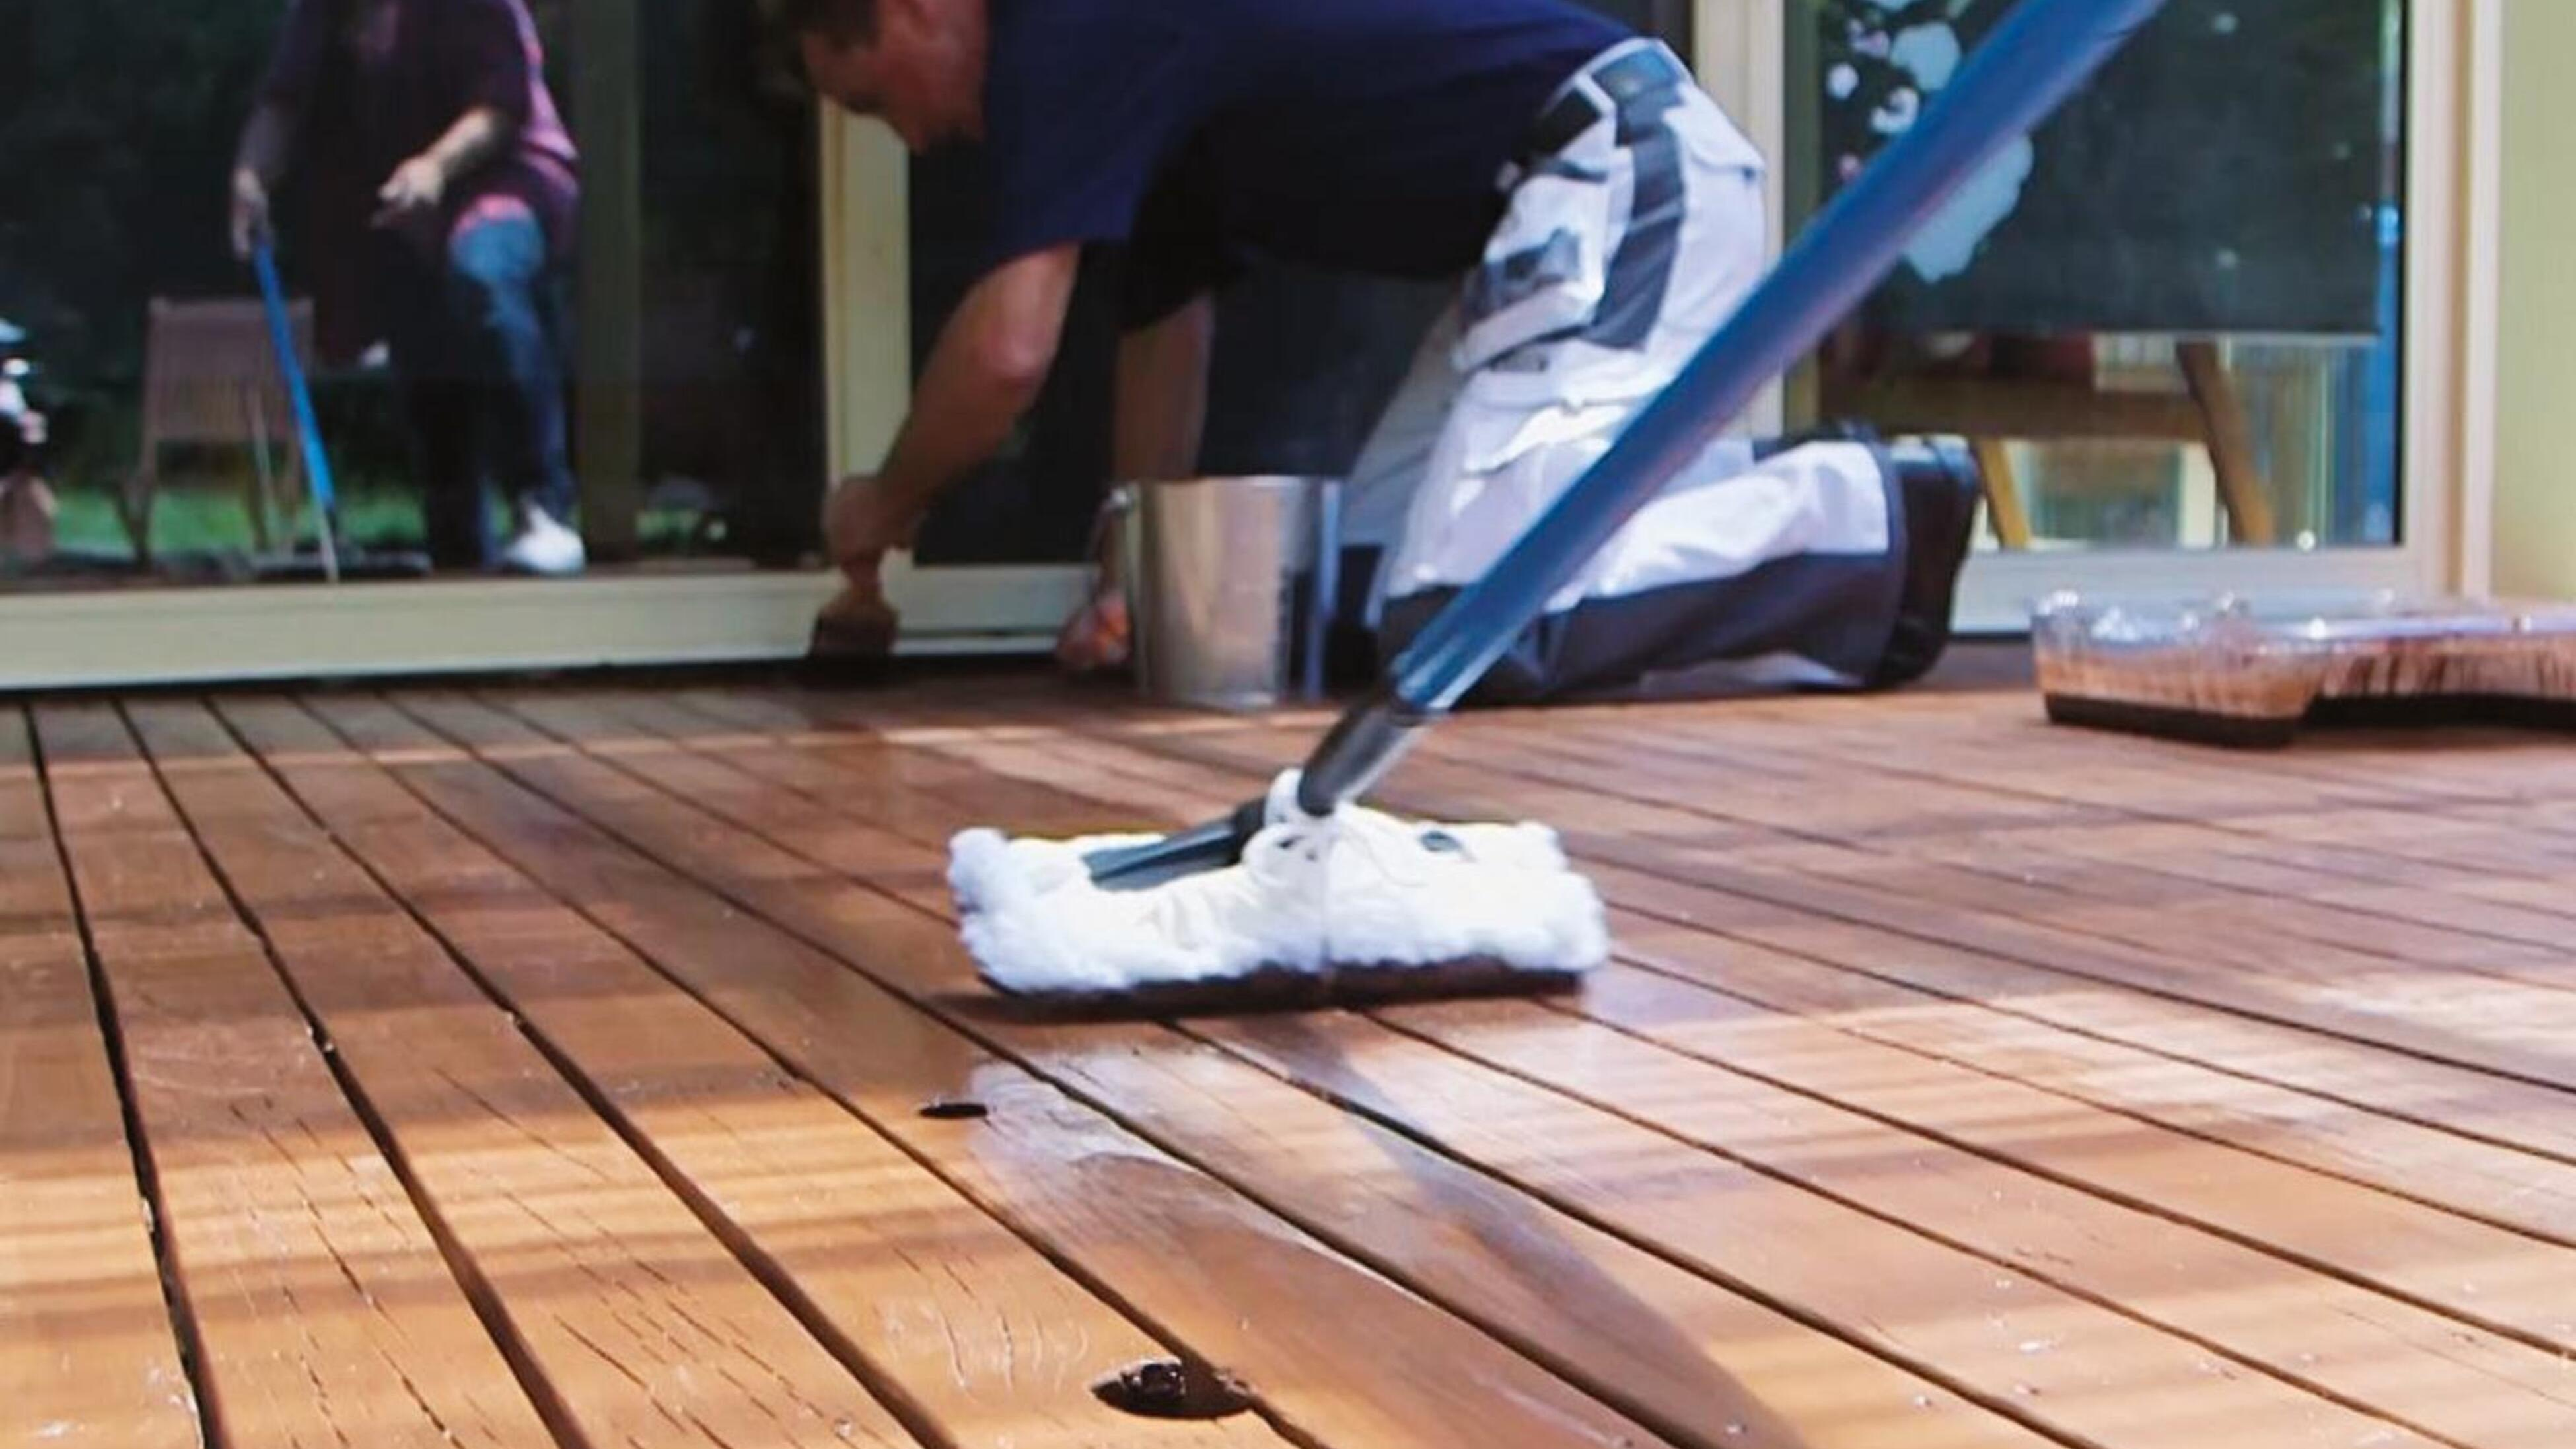 Second coat of decking oil being applied with lambswool applicator.